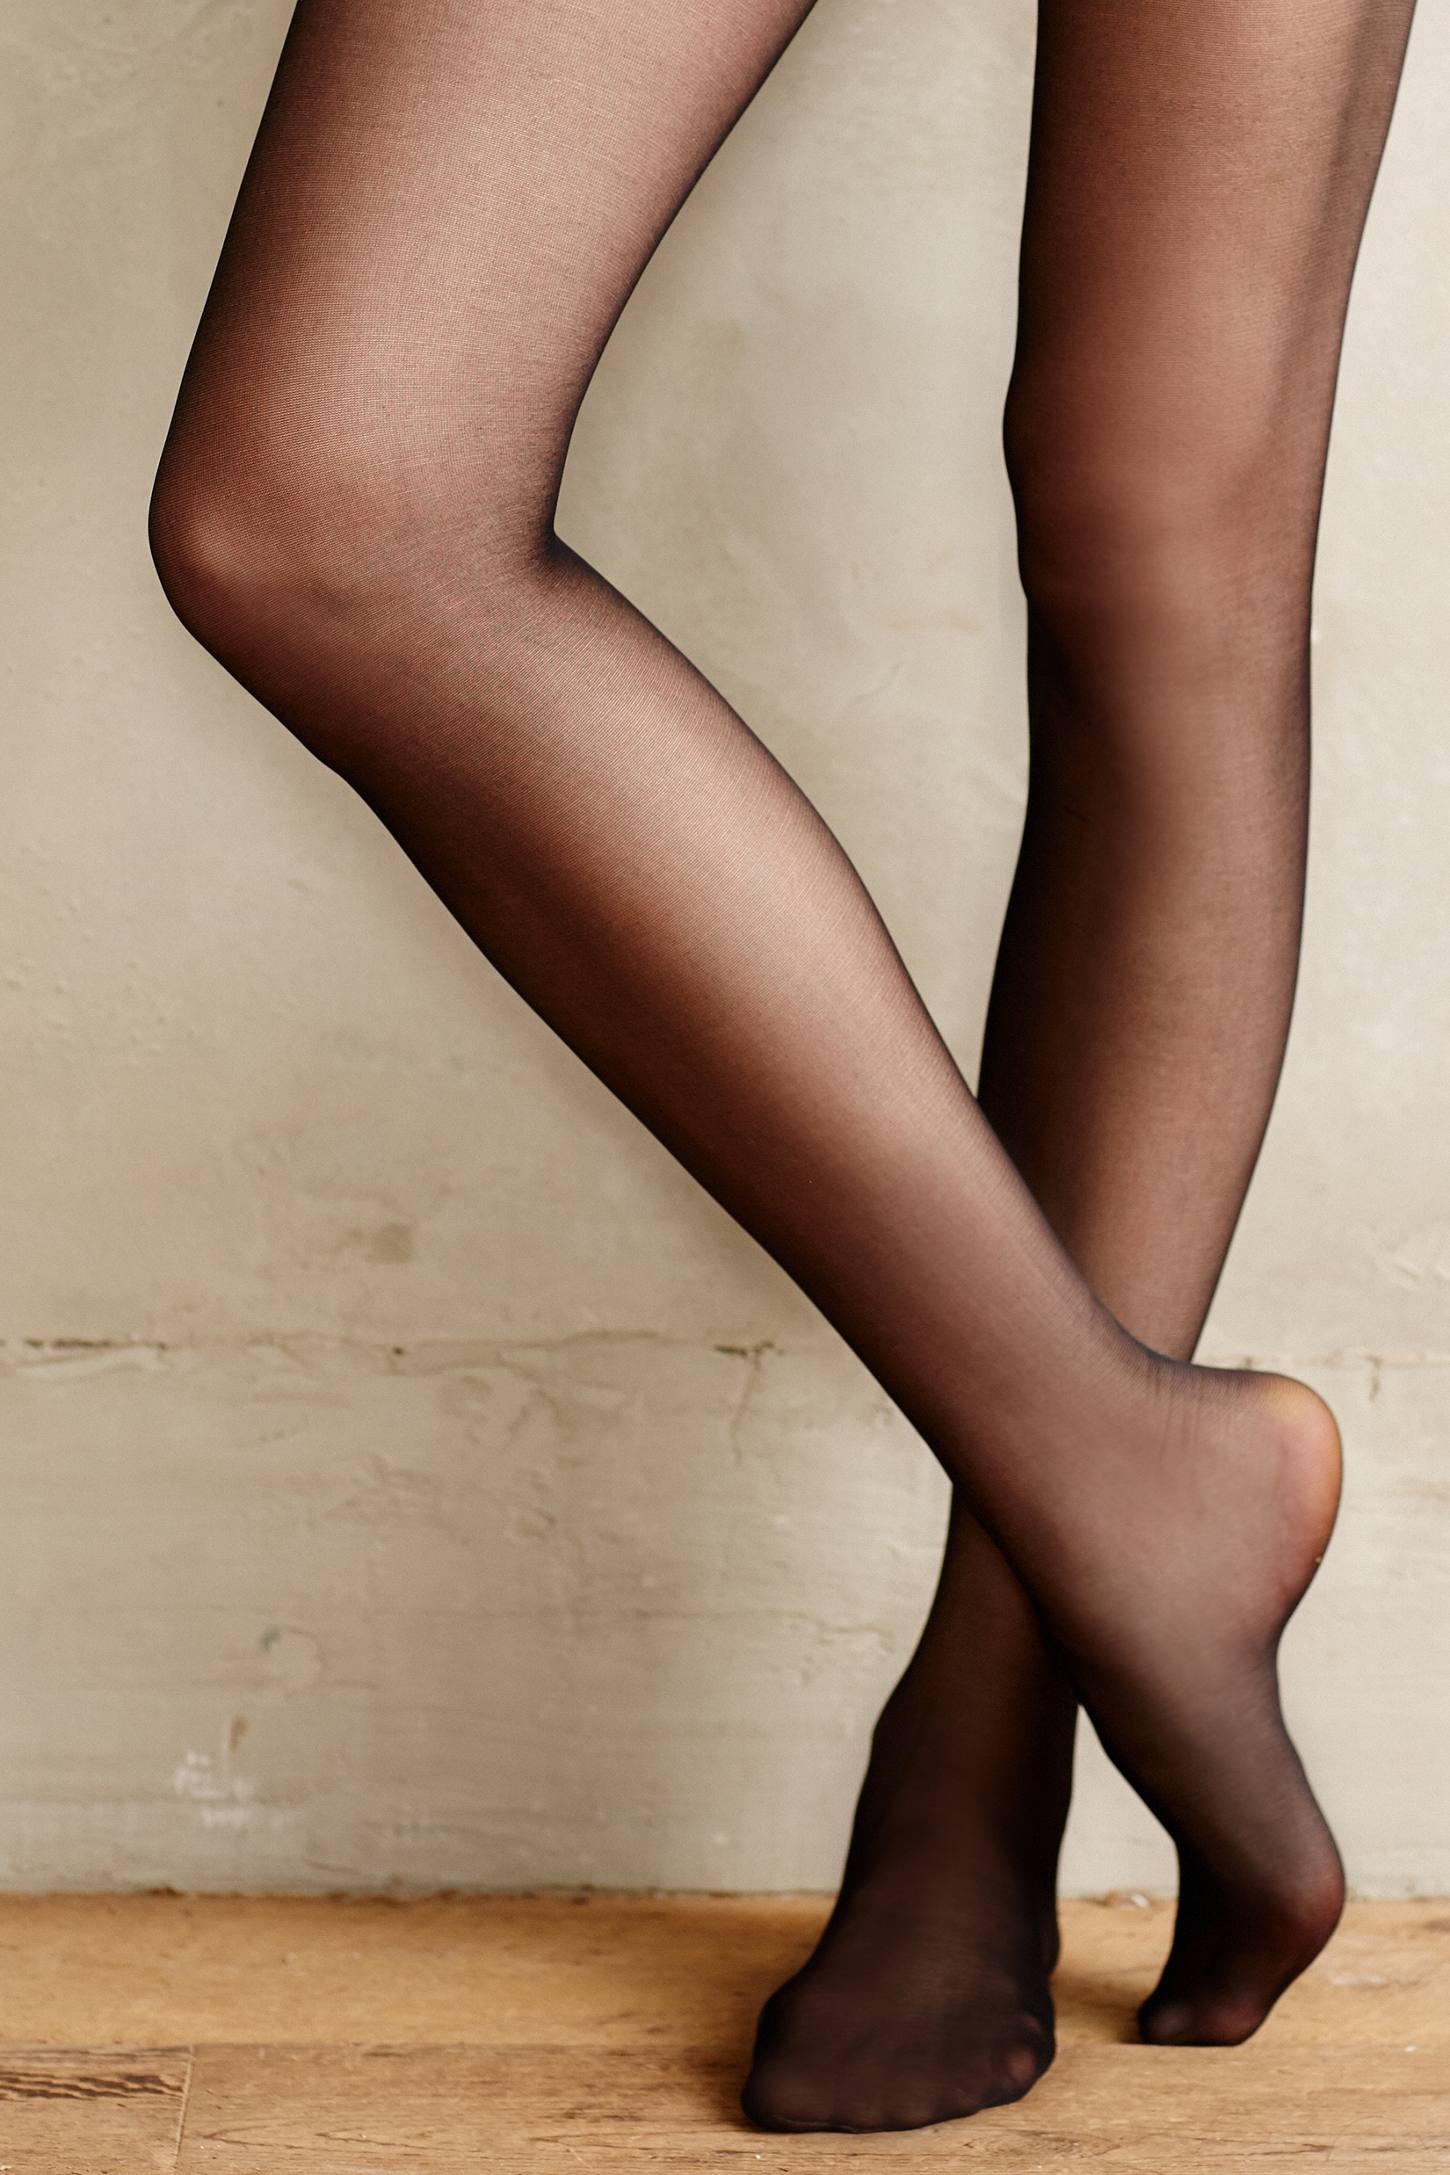 Find great deals on eBay for black sheer stockings. Shop with confidence.